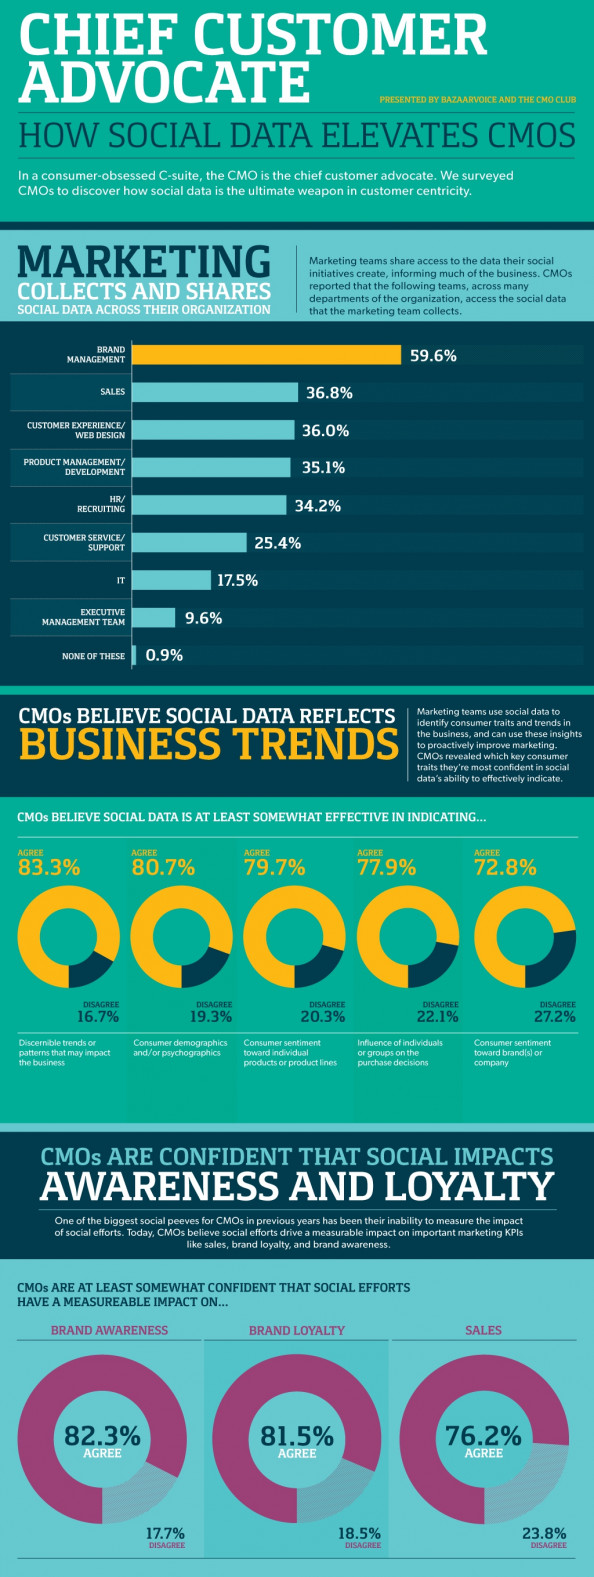 Chief customer advocate: How social data elevates CMOs Infographic